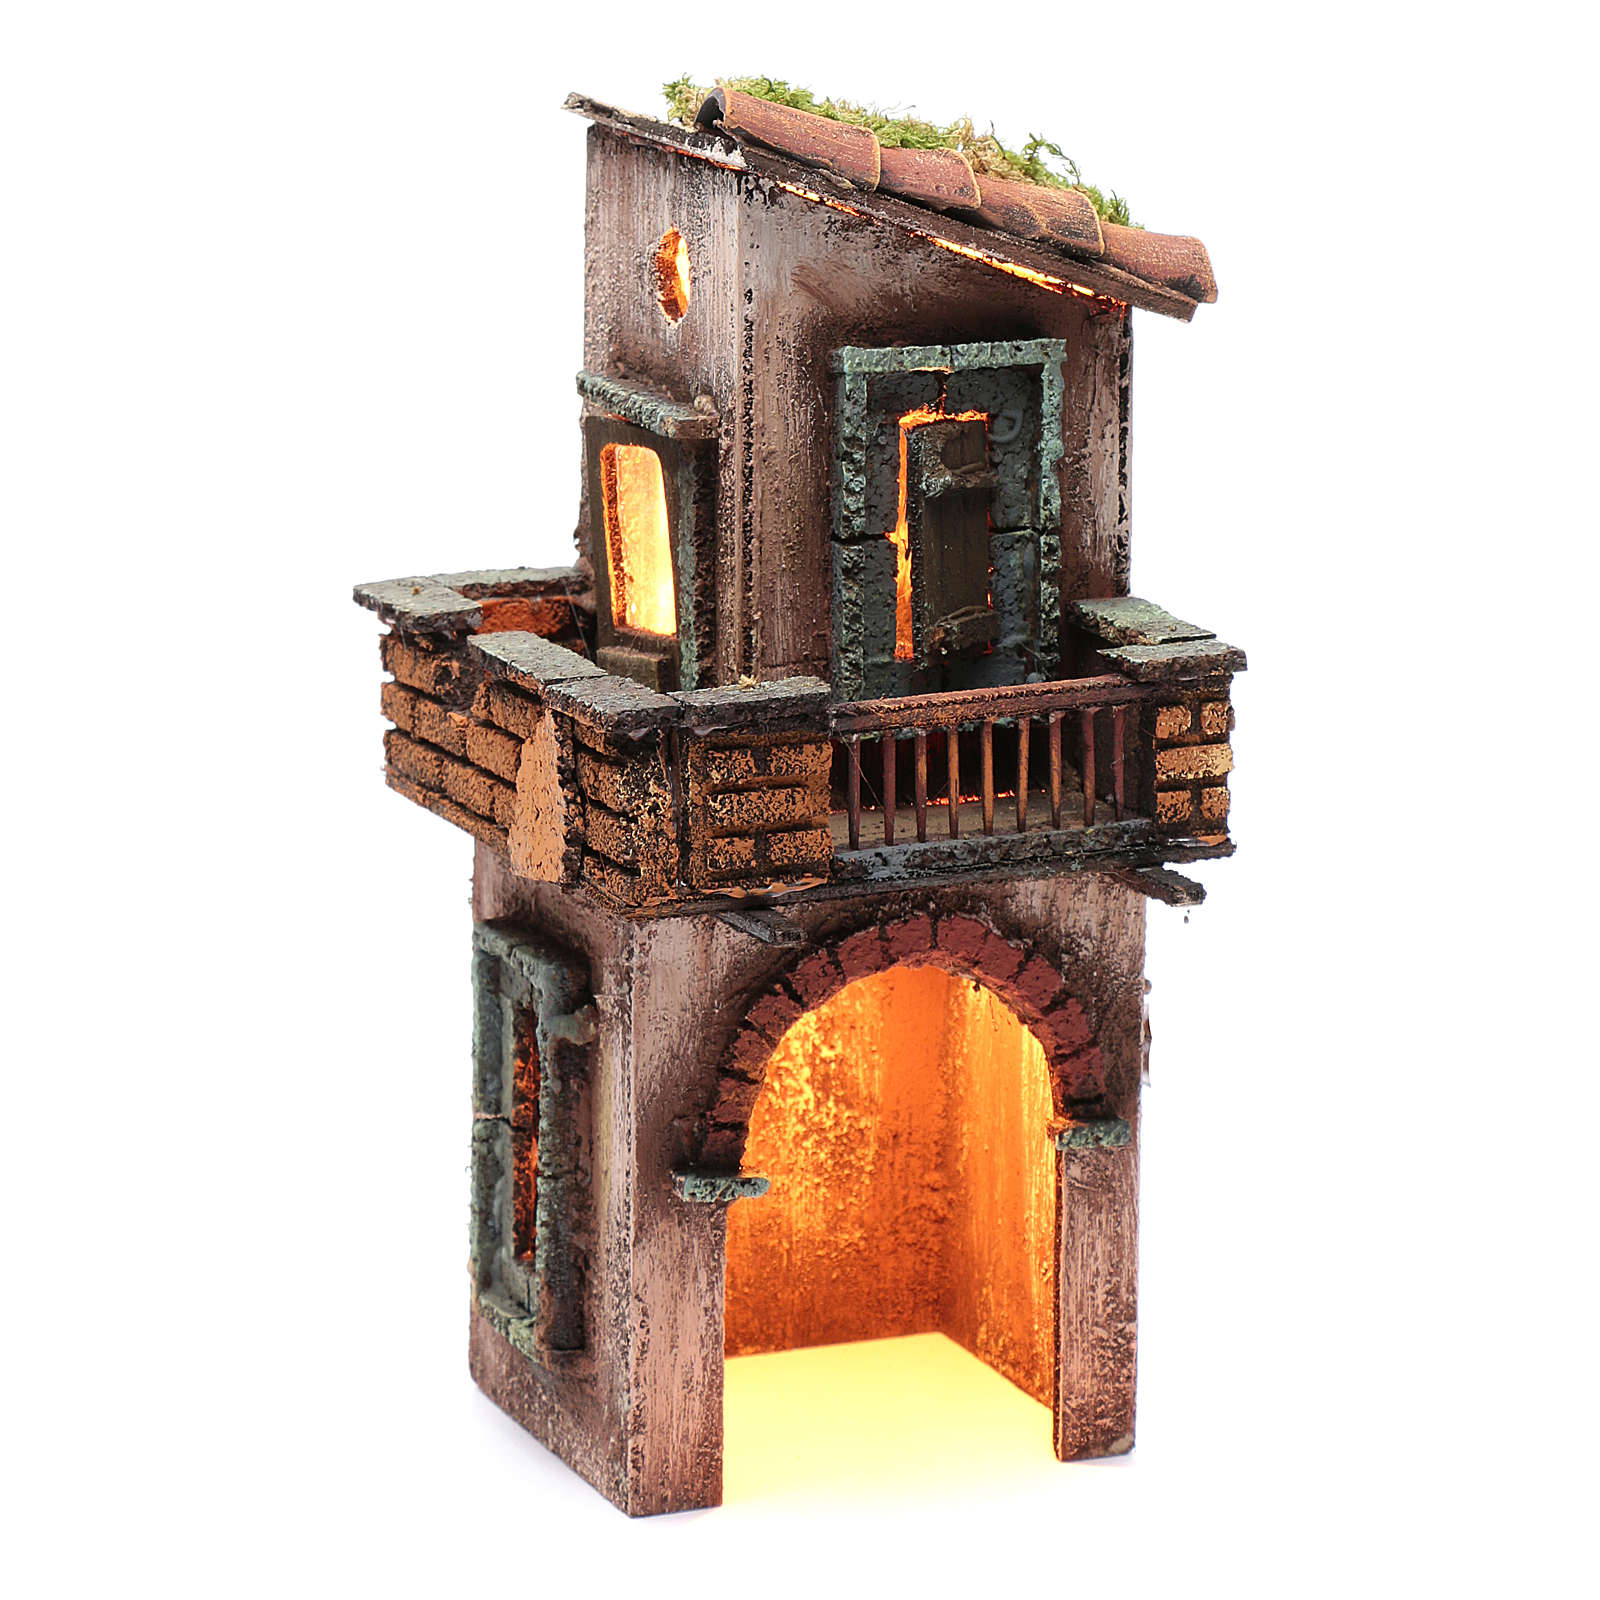 Wooden house for Neapolitan nativity scene 27X12X13 cm 4